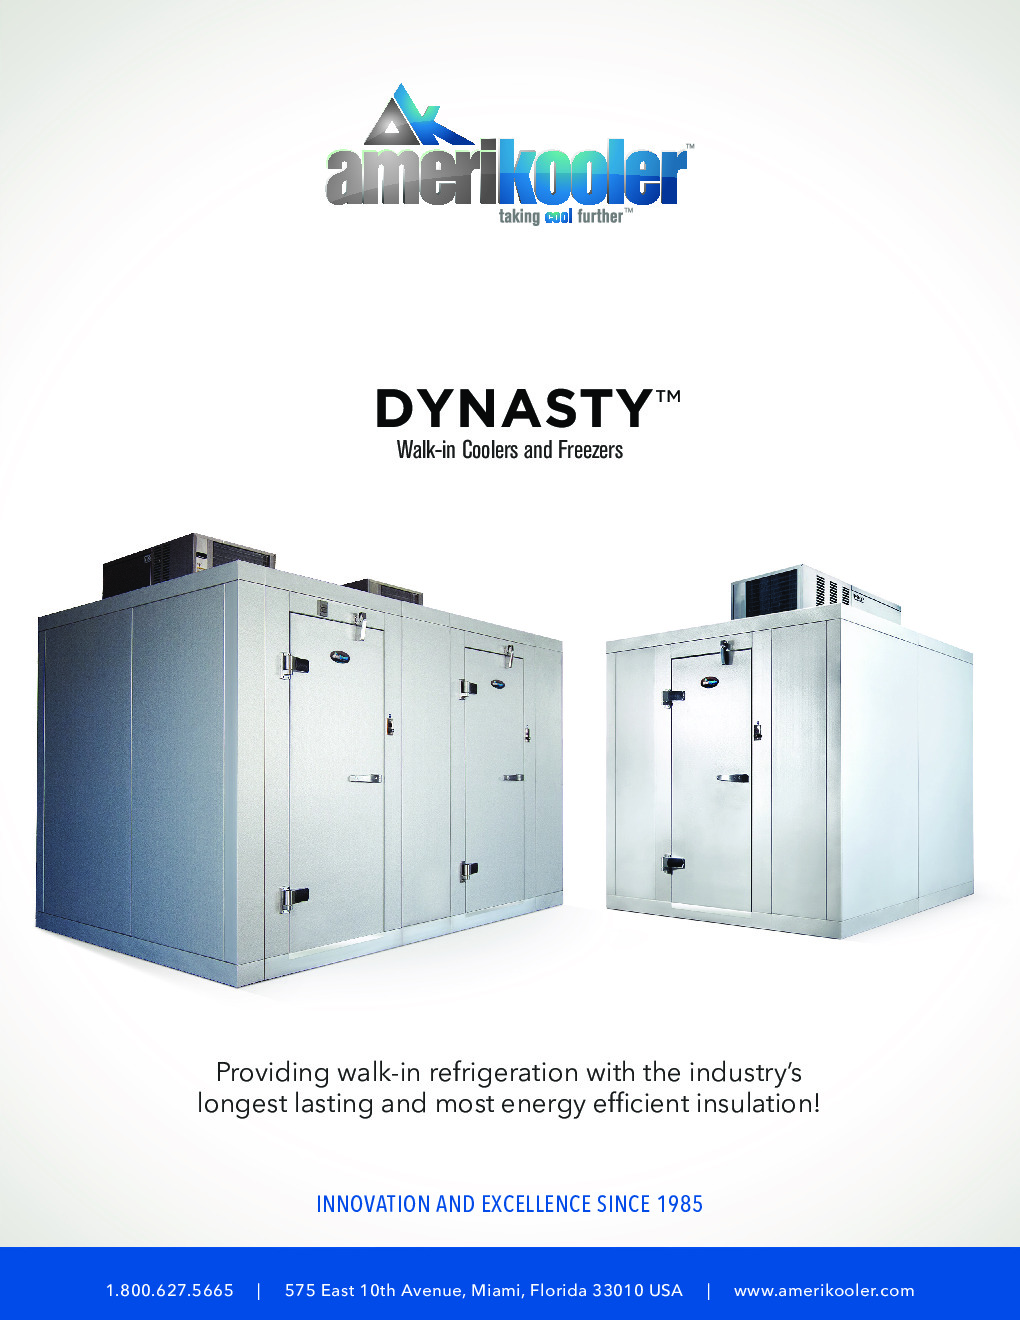 AmeriKooler DW061477F-7/7-RM 6' X 14' Walk-In Cooler, 7' L Cooler with Floor and 7' L Freezer, Remote